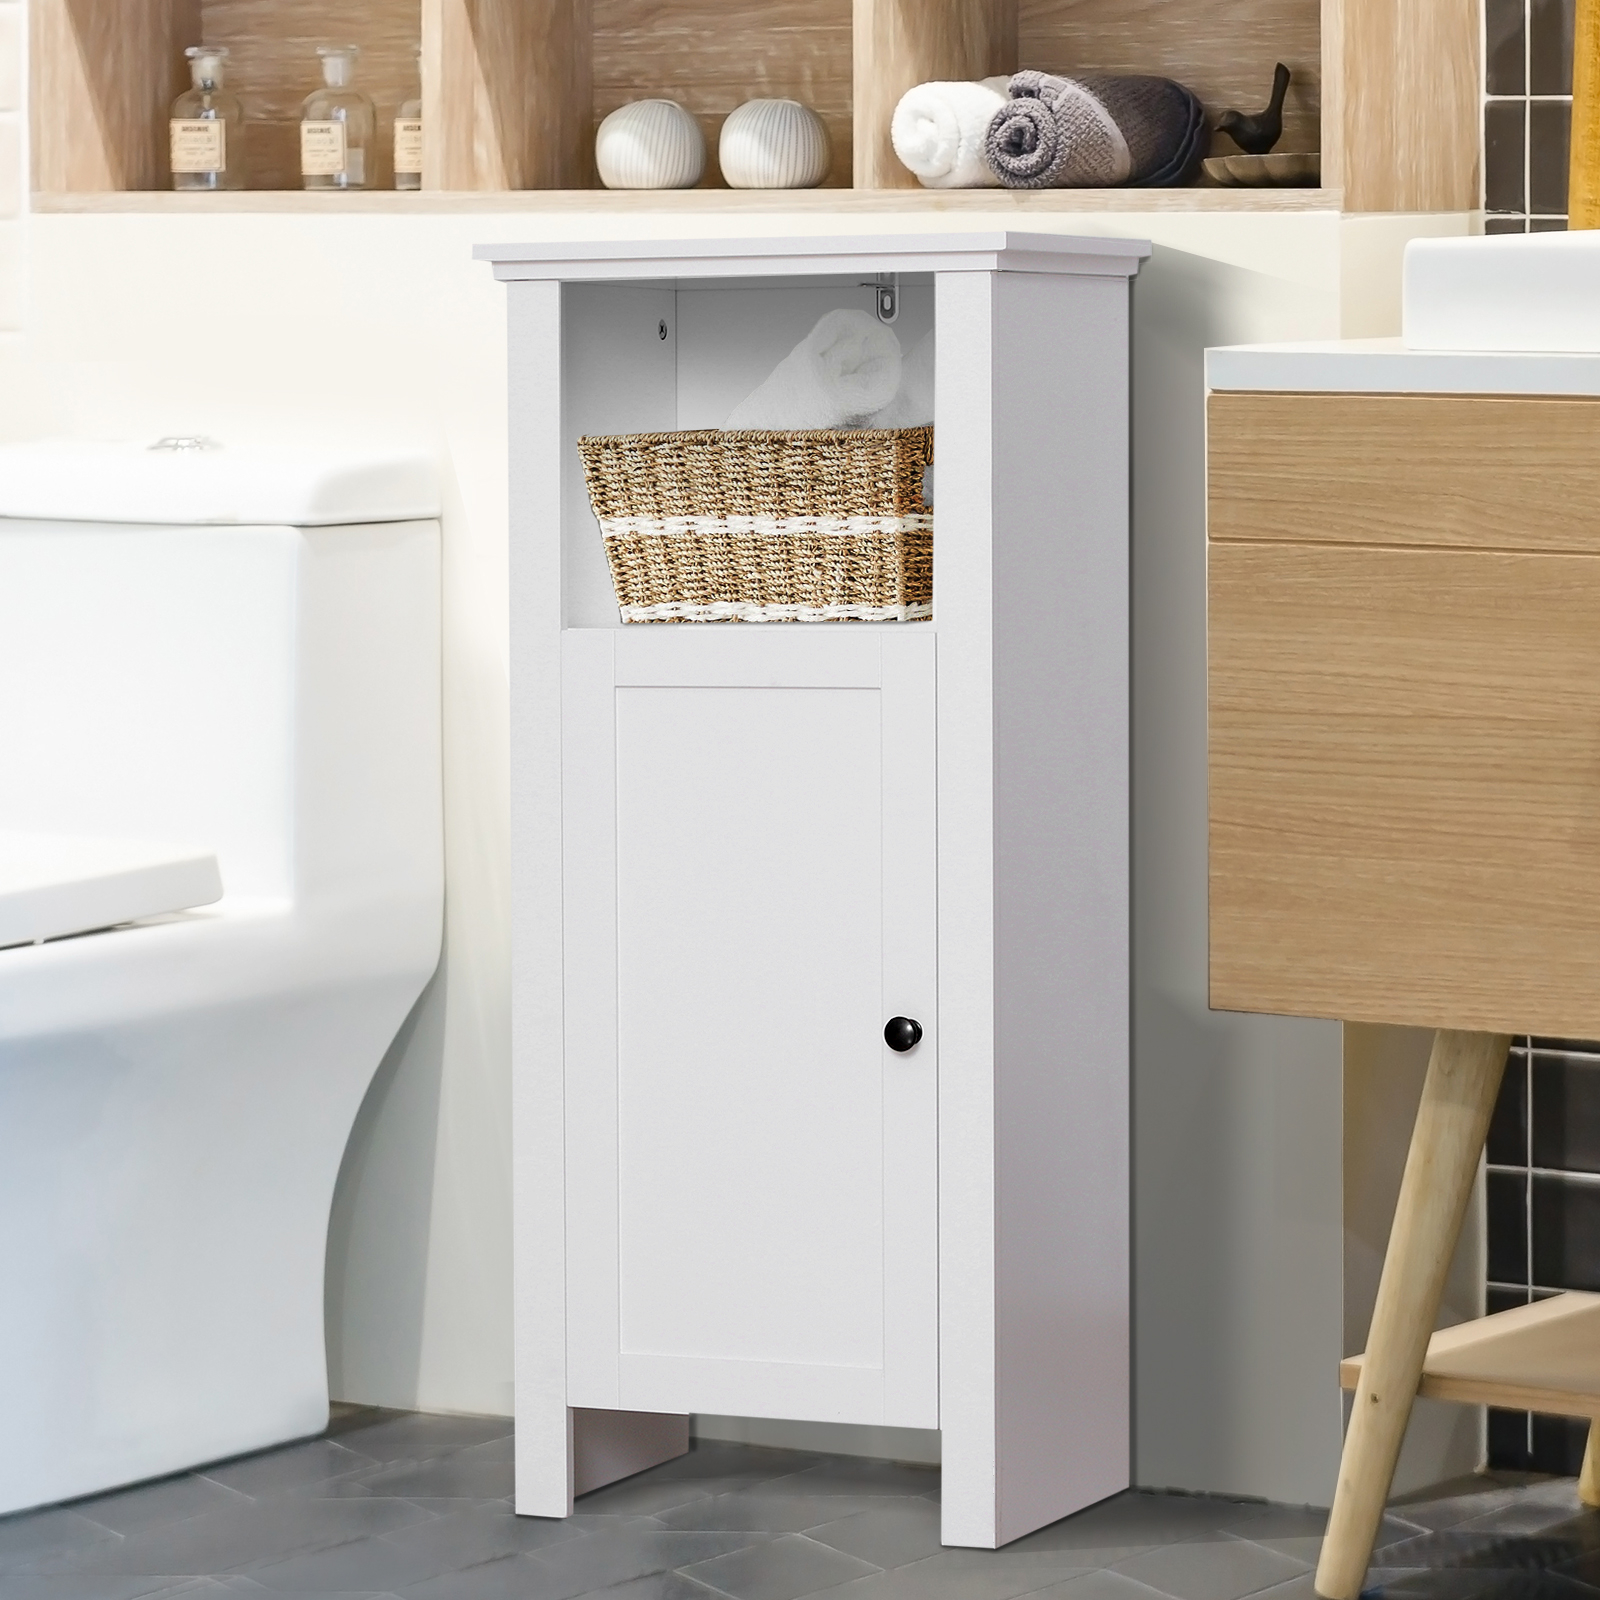 Details About 36 Compact Freestanding Bathroom Storage Cabinet Organizer White in size 1600 X 1600